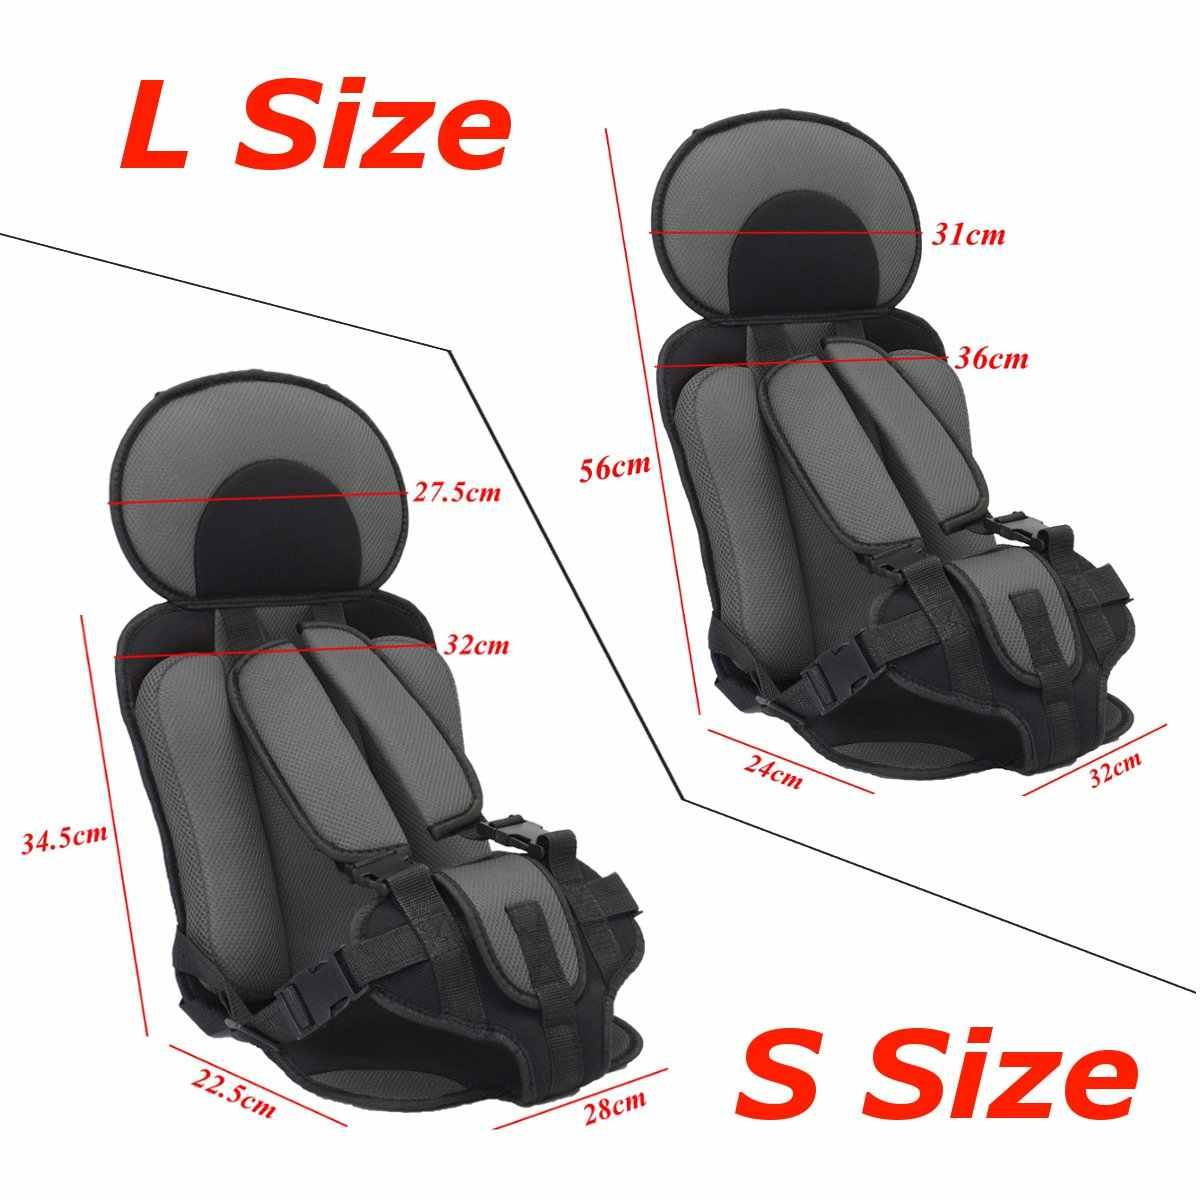 0 6 And 6 12 Year Old Kids Safe Seat Portable Baby Safety Seat Children S Chairs Thickening Sponge Kids Child Car Seats 2 Size